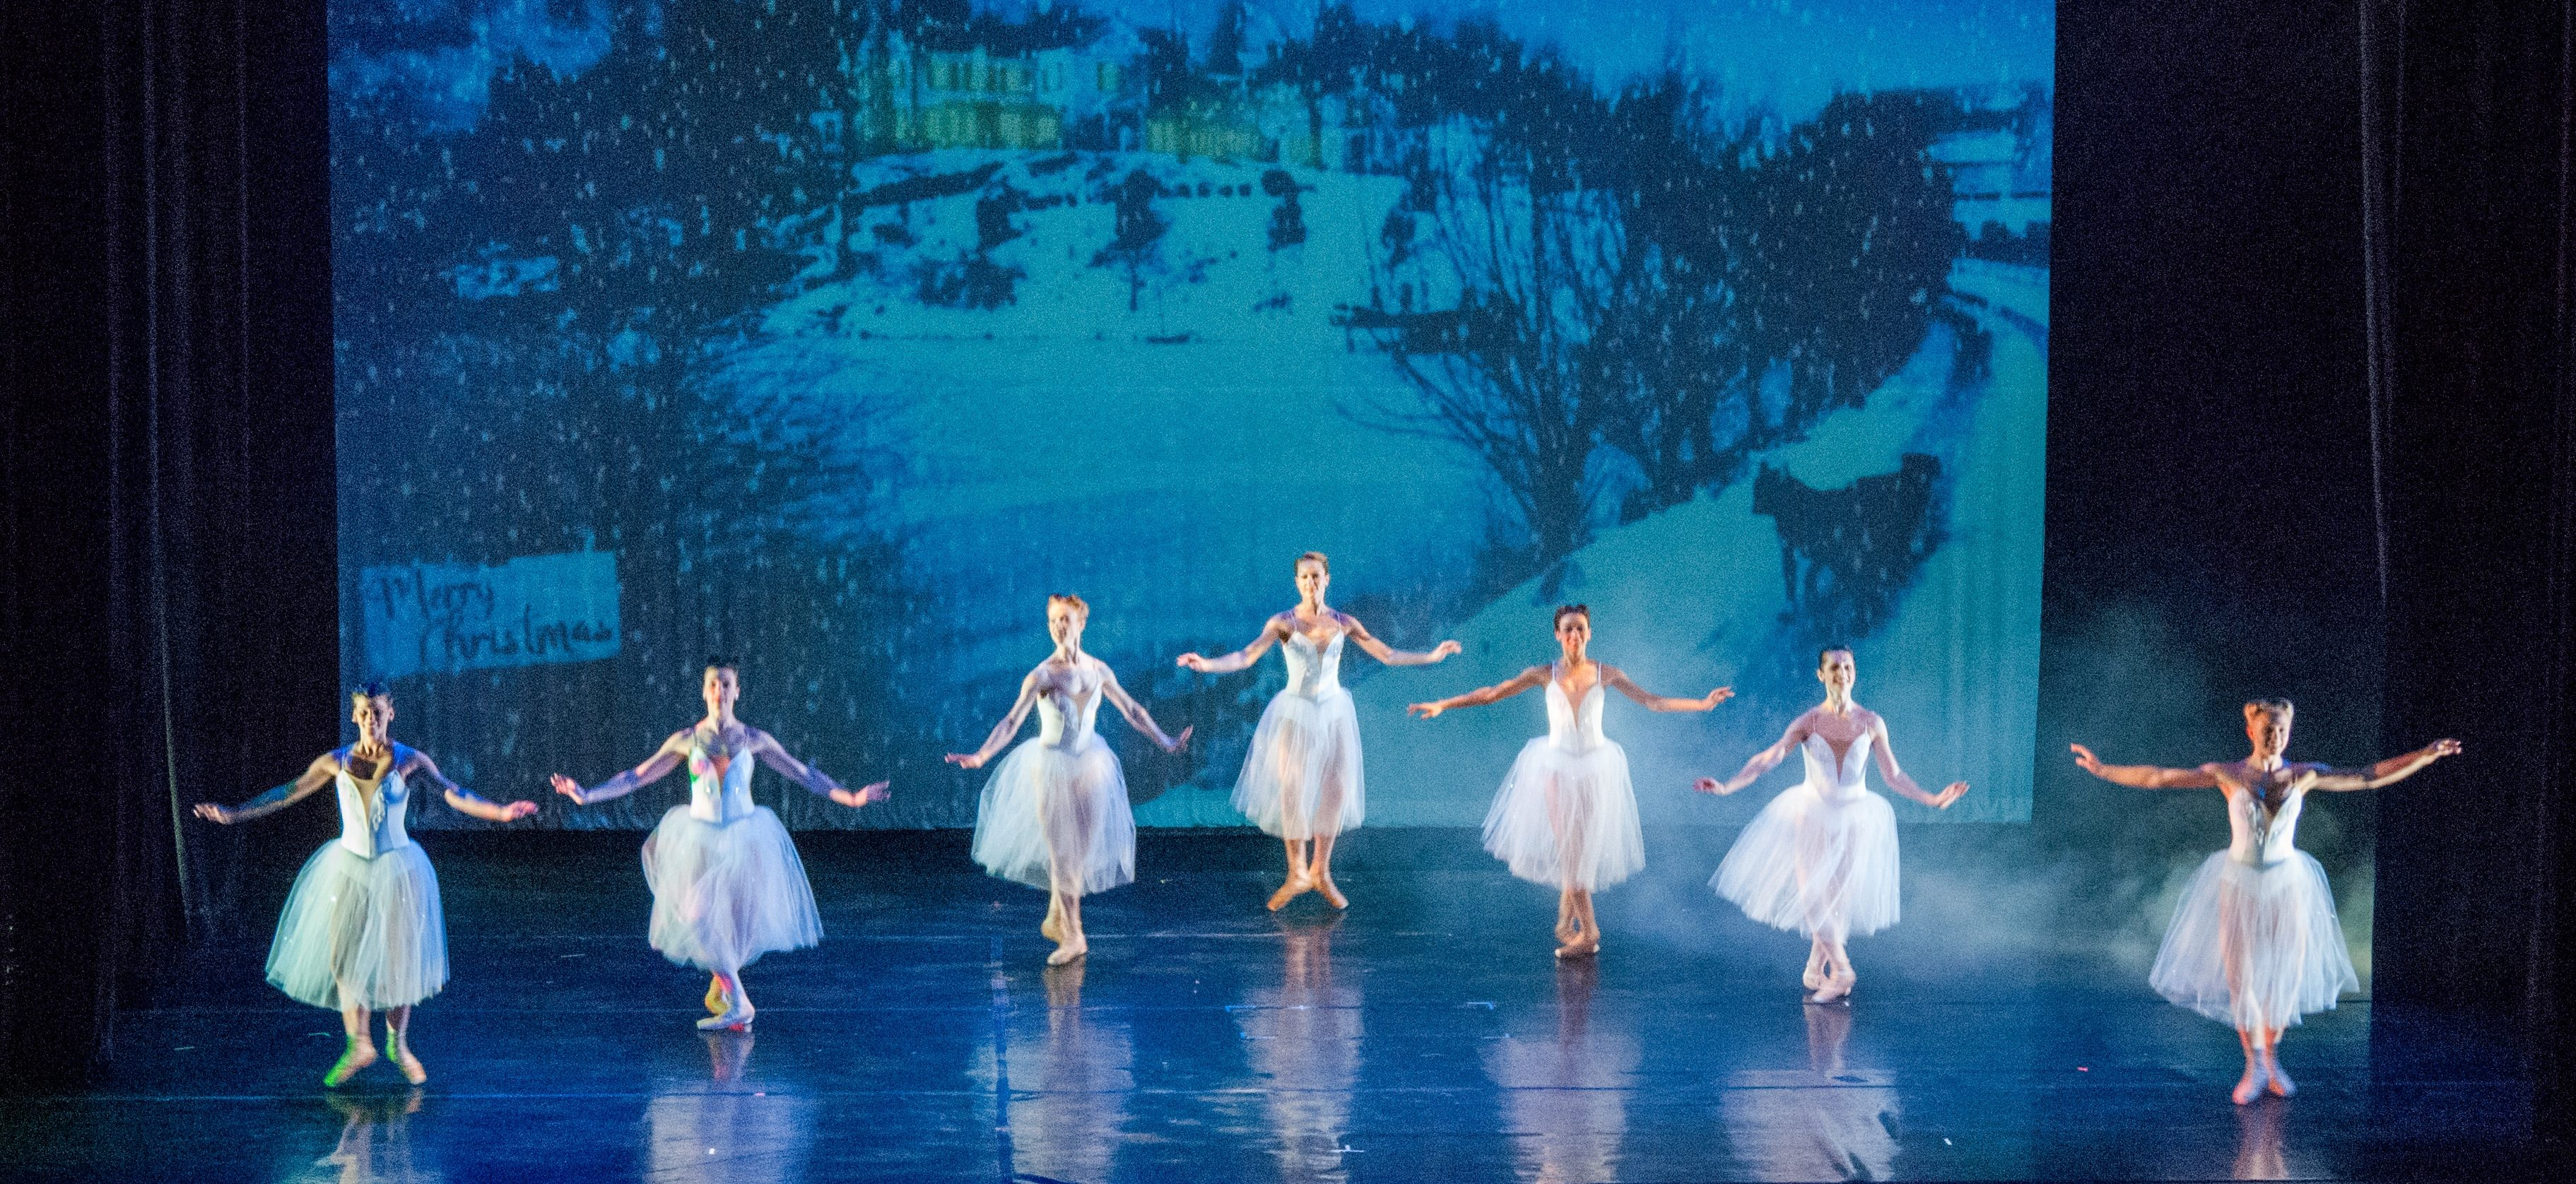 Seven ballerinas in white dresses dance in front of a blue backdrop